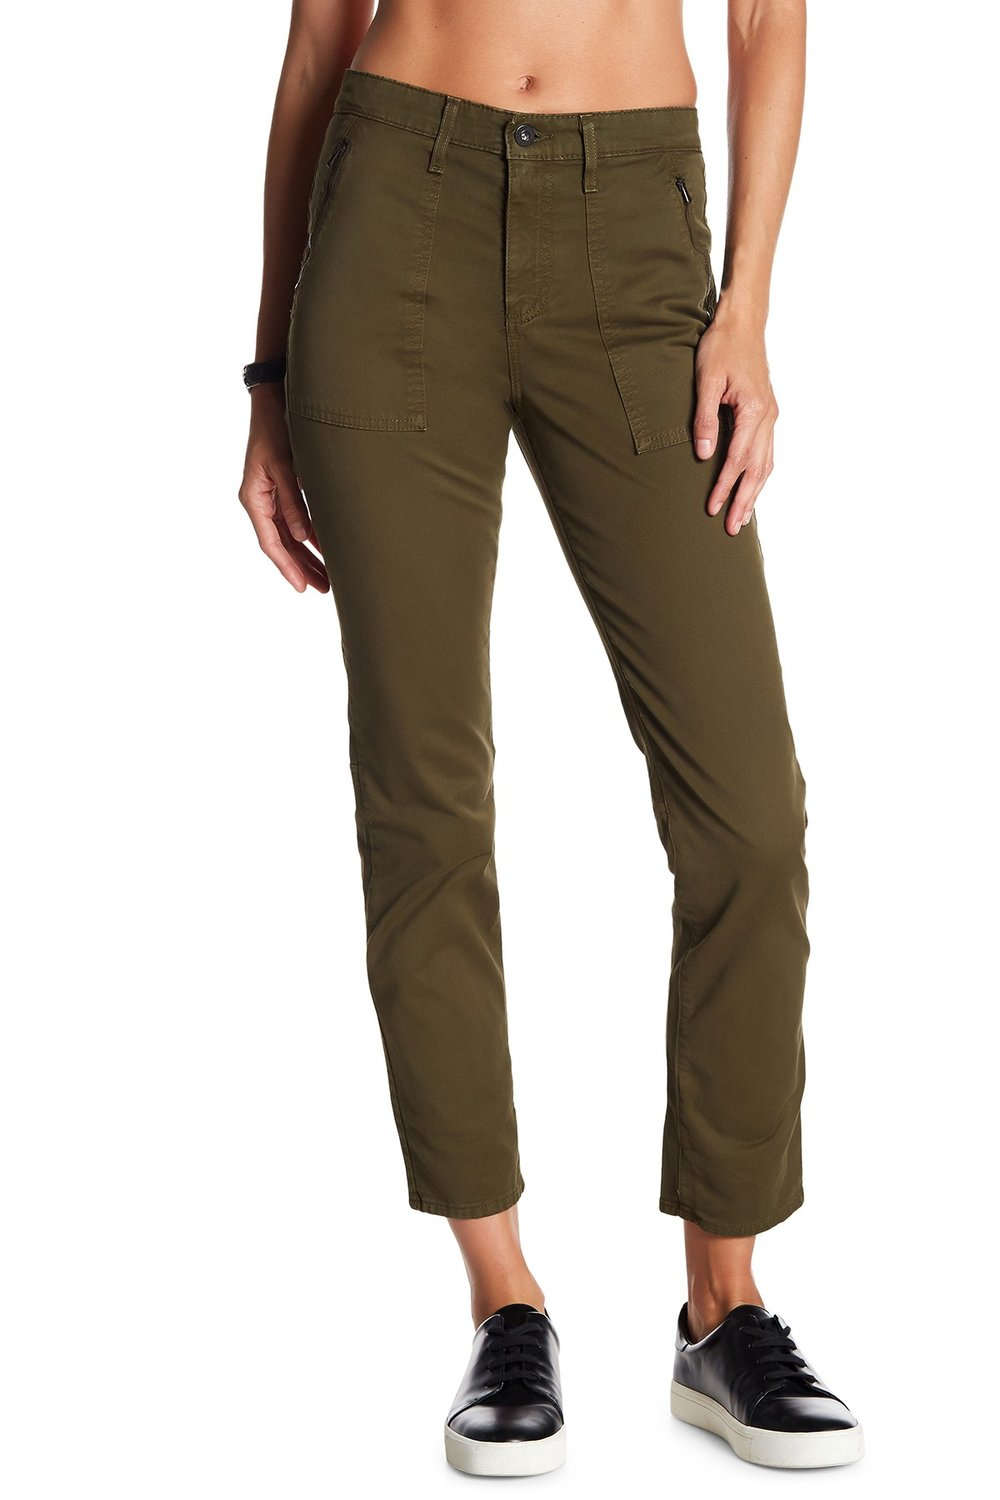 AG Kinsley High Rise Utility Pants. Nordstrom Rack. Was: $225. Now: $59.